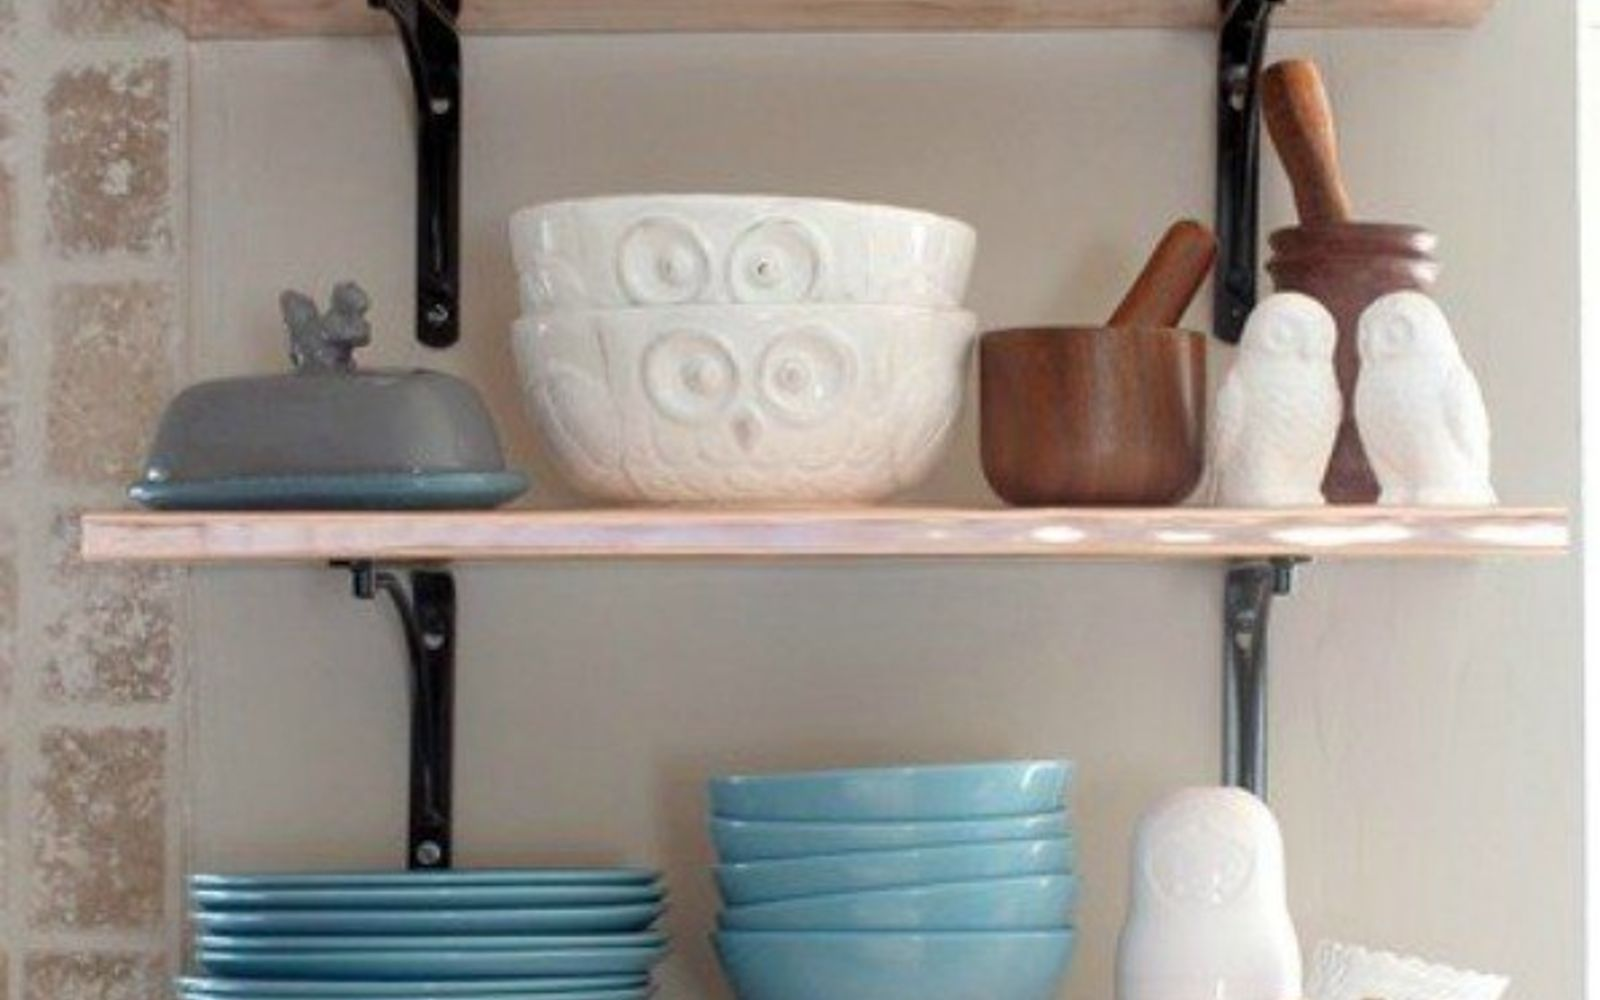 s 15 clever ways to add more kitchen storage space with open shelves, kitchen design, shelving ideas, storage ideas, Make them out of brass or copper